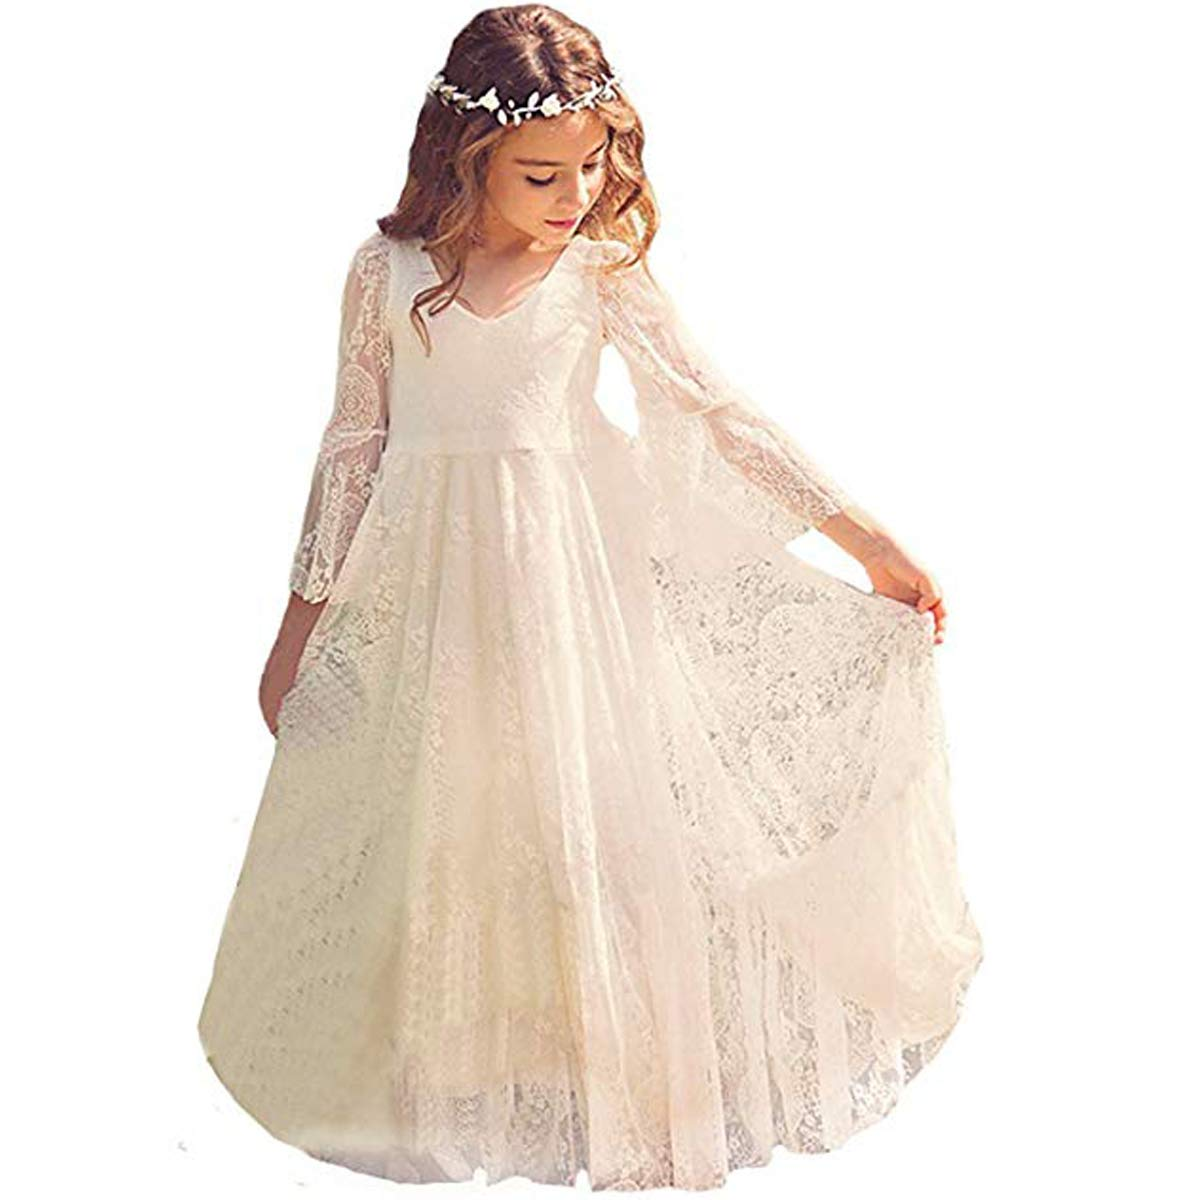 Vintage Style Children's Clothing: Girls, Boys, Baby, Toddler CQDY Flower Girl Dress Lace Dress for Wedding White Ivory Dress Long Sleeve 2-15T $35.99 AT vintagedancer.com